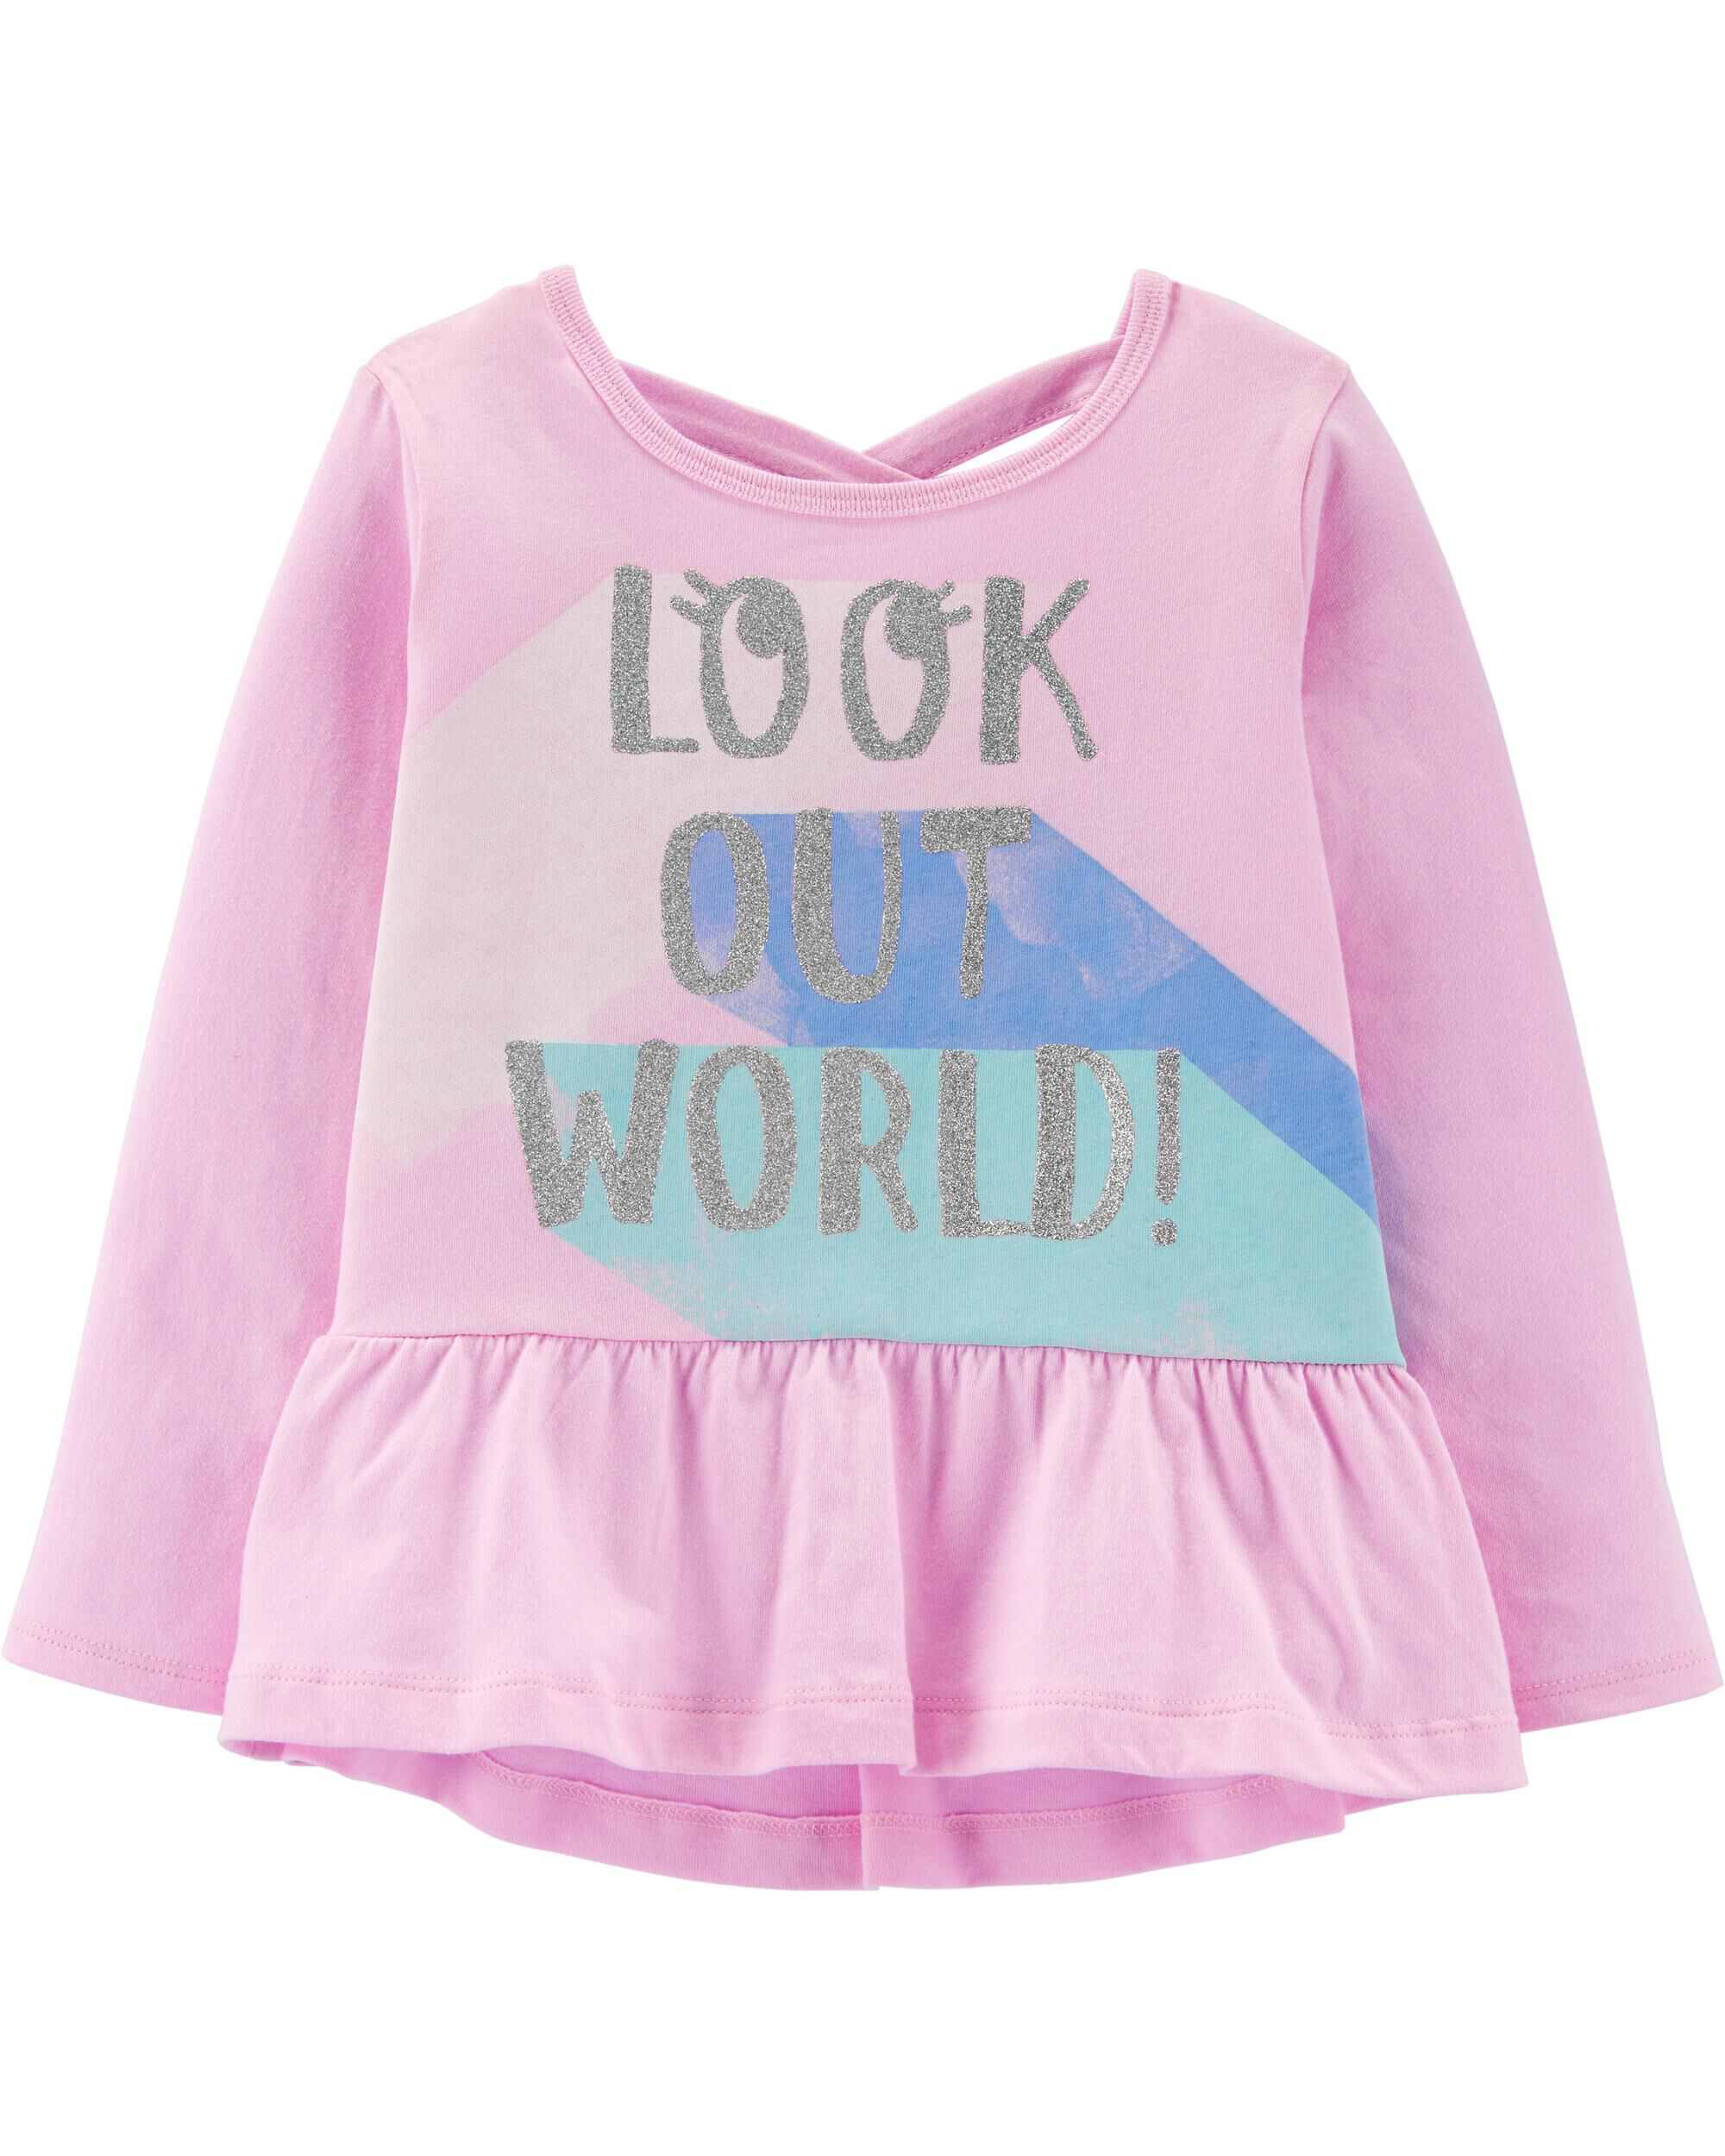 *Clearance*  Look Out World Peplum Top